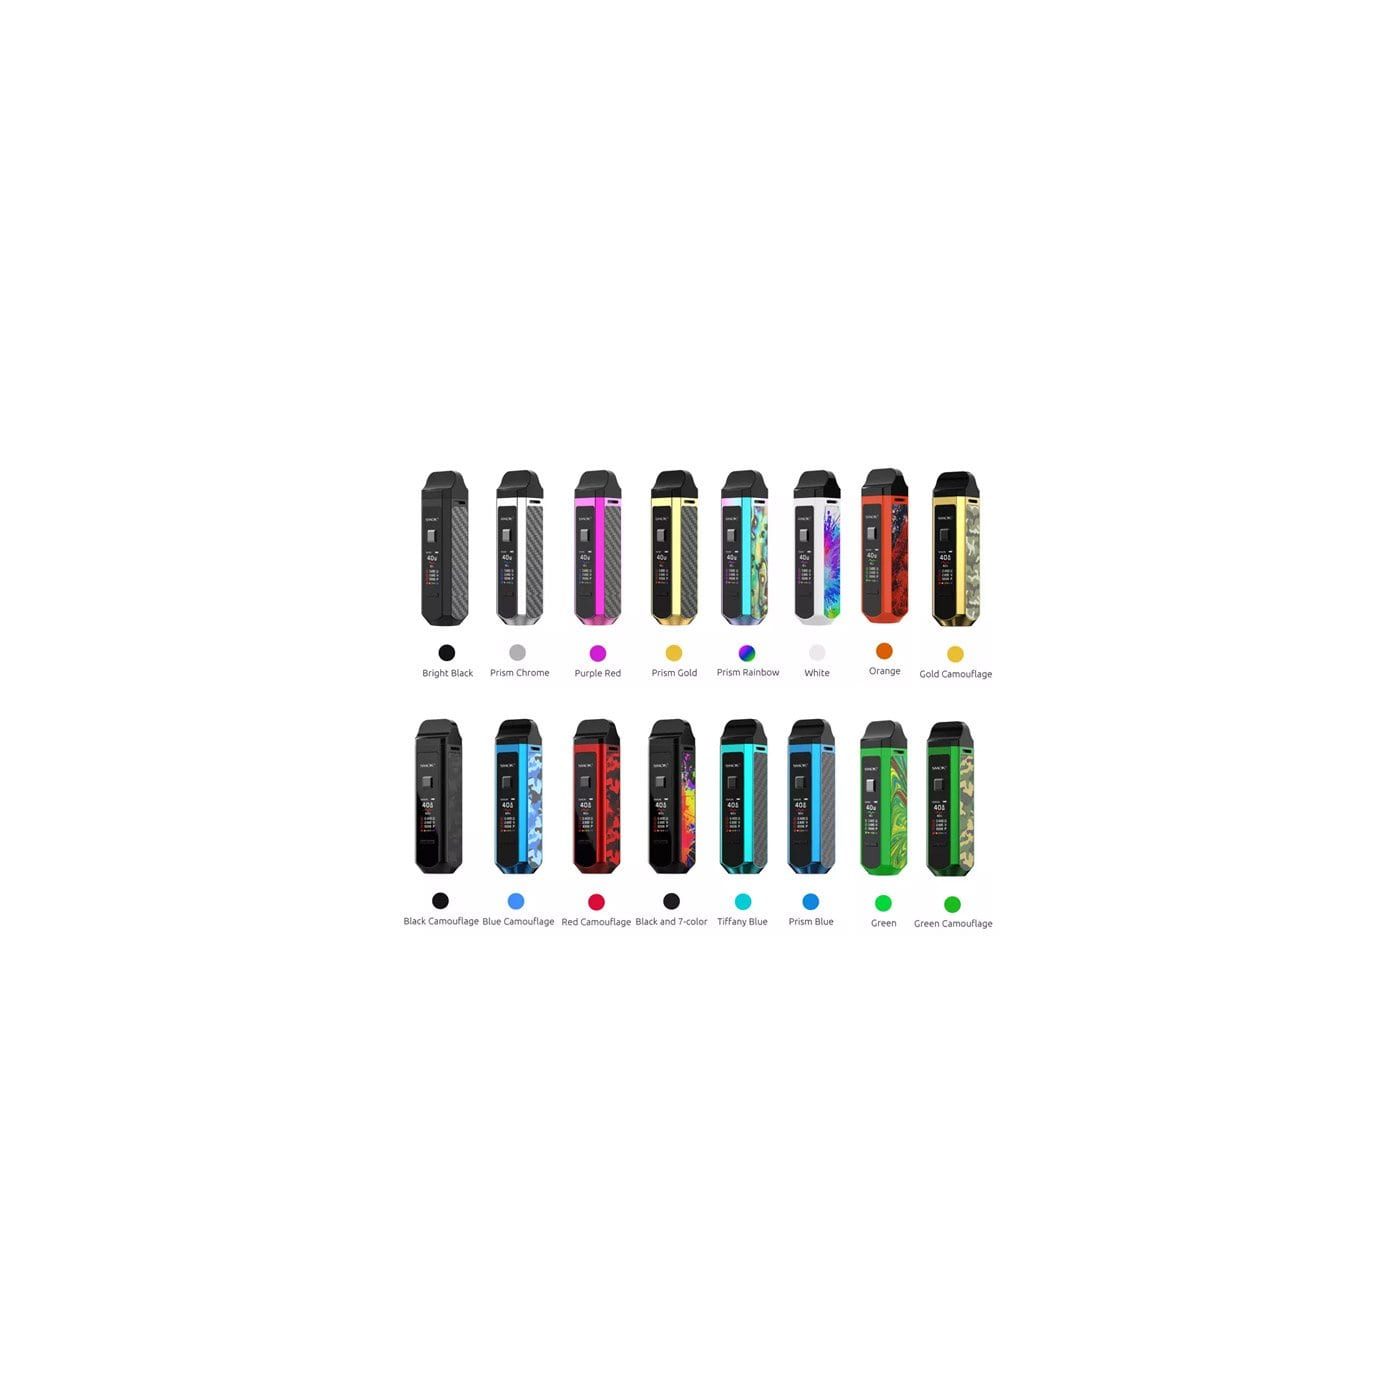 SMOK RPM 40 KIT - All Color Options